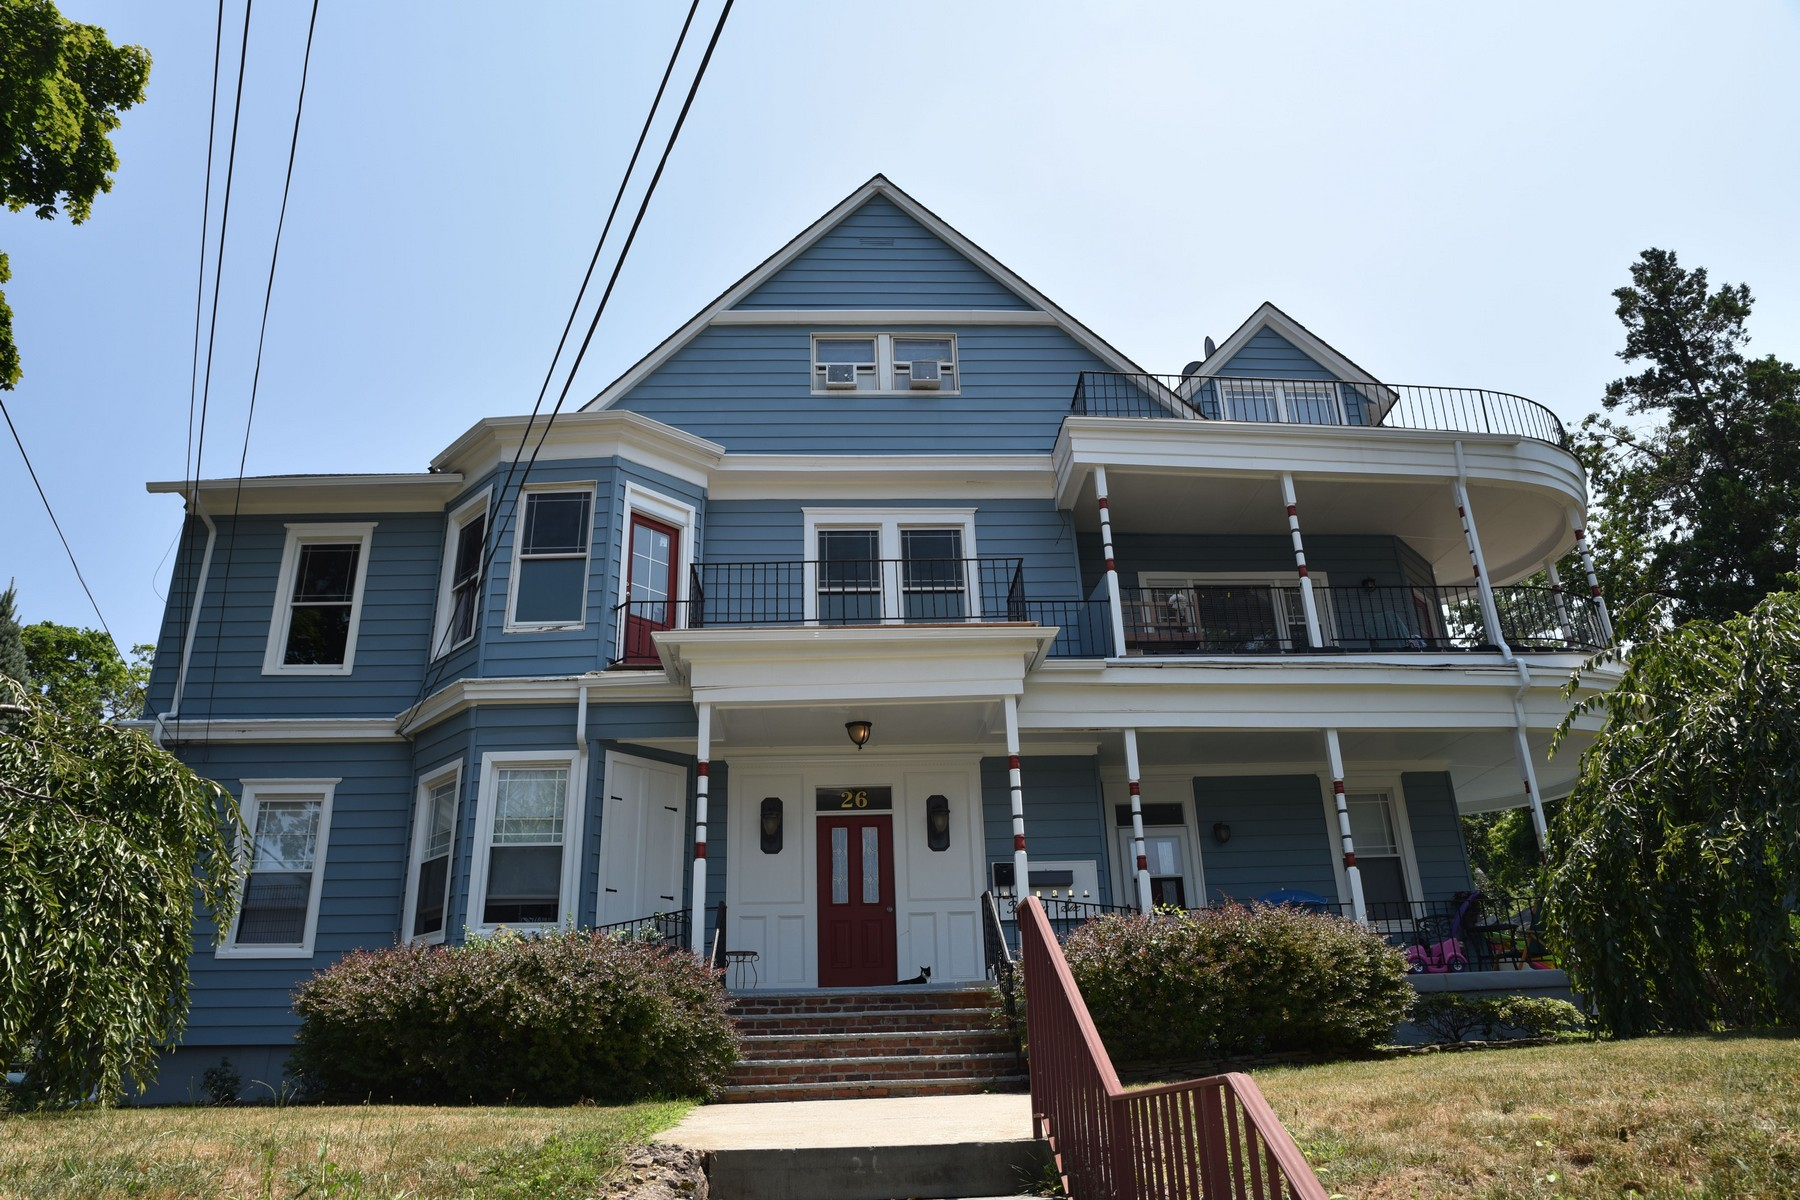 Multi-Family Homes for Sale at Gracious Victorian Beauty 26 6th Ave Atlantic Highlands, New Jersey 07716 United States